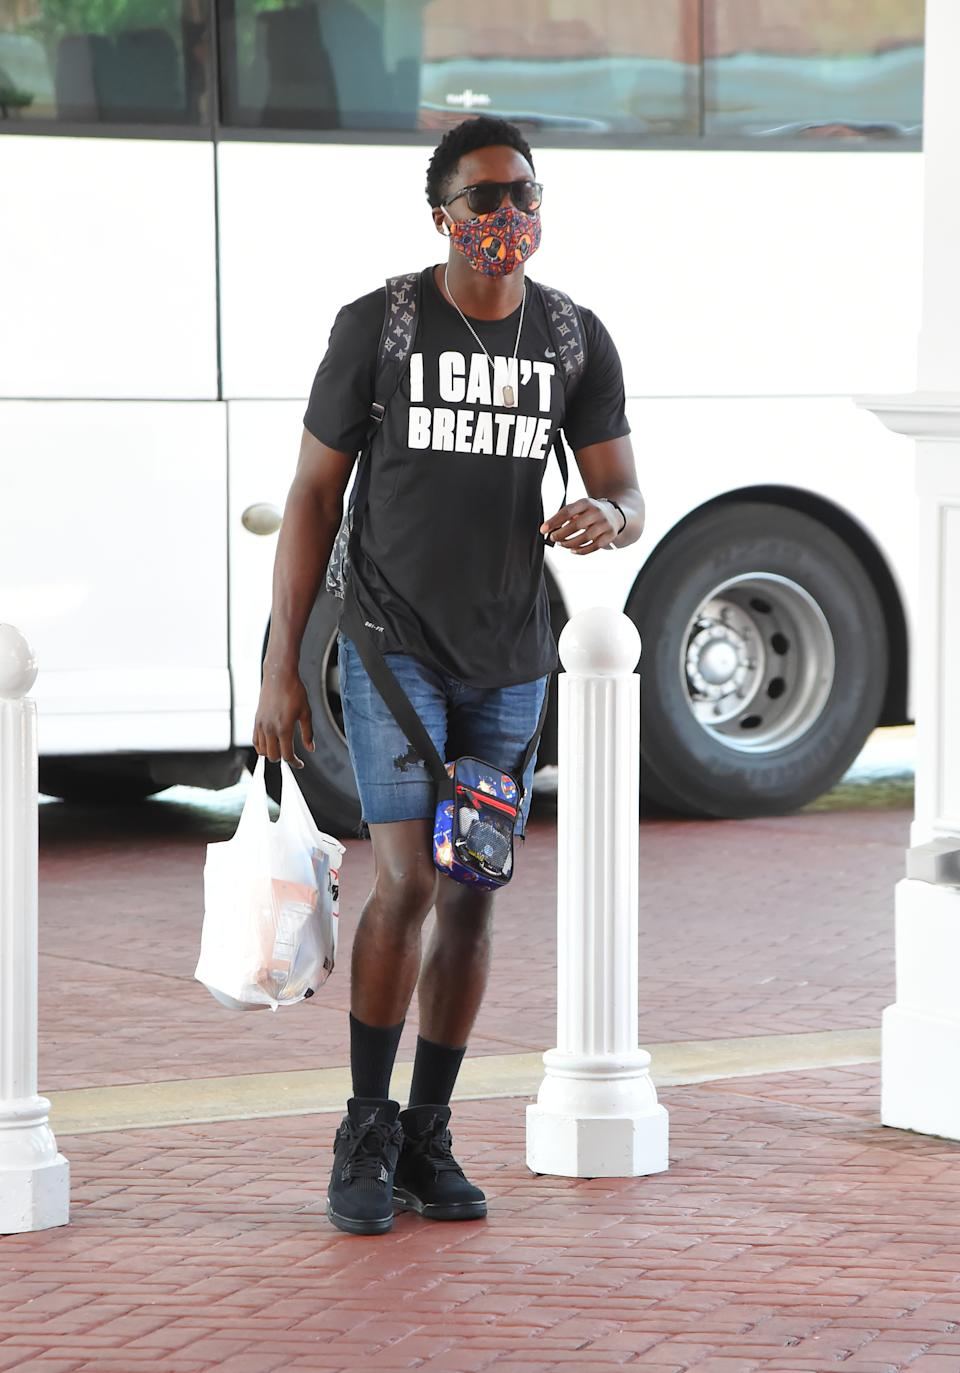 Victor Oladipo #4 of the Indiana Pacers arrives at the hotel as part of the NBA Restart 2020 on July 9, 2020 in Orlando, Florida. (Photo by Bill Baptist/NBAE via Getty Images)